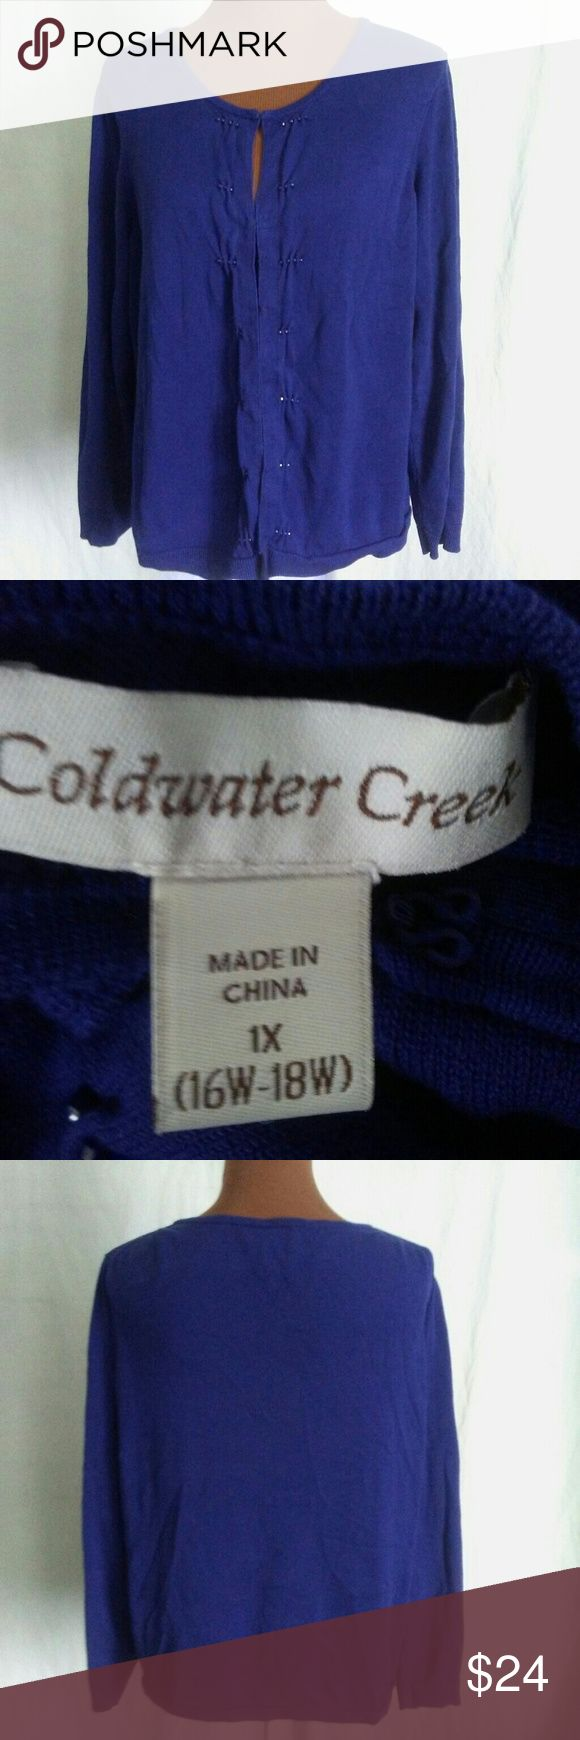 Cold Water Creek blue cardigan Coldwater Creek blue cardigan size extra large hook and eye closure Coldwater Creek Sweaters Cardigans